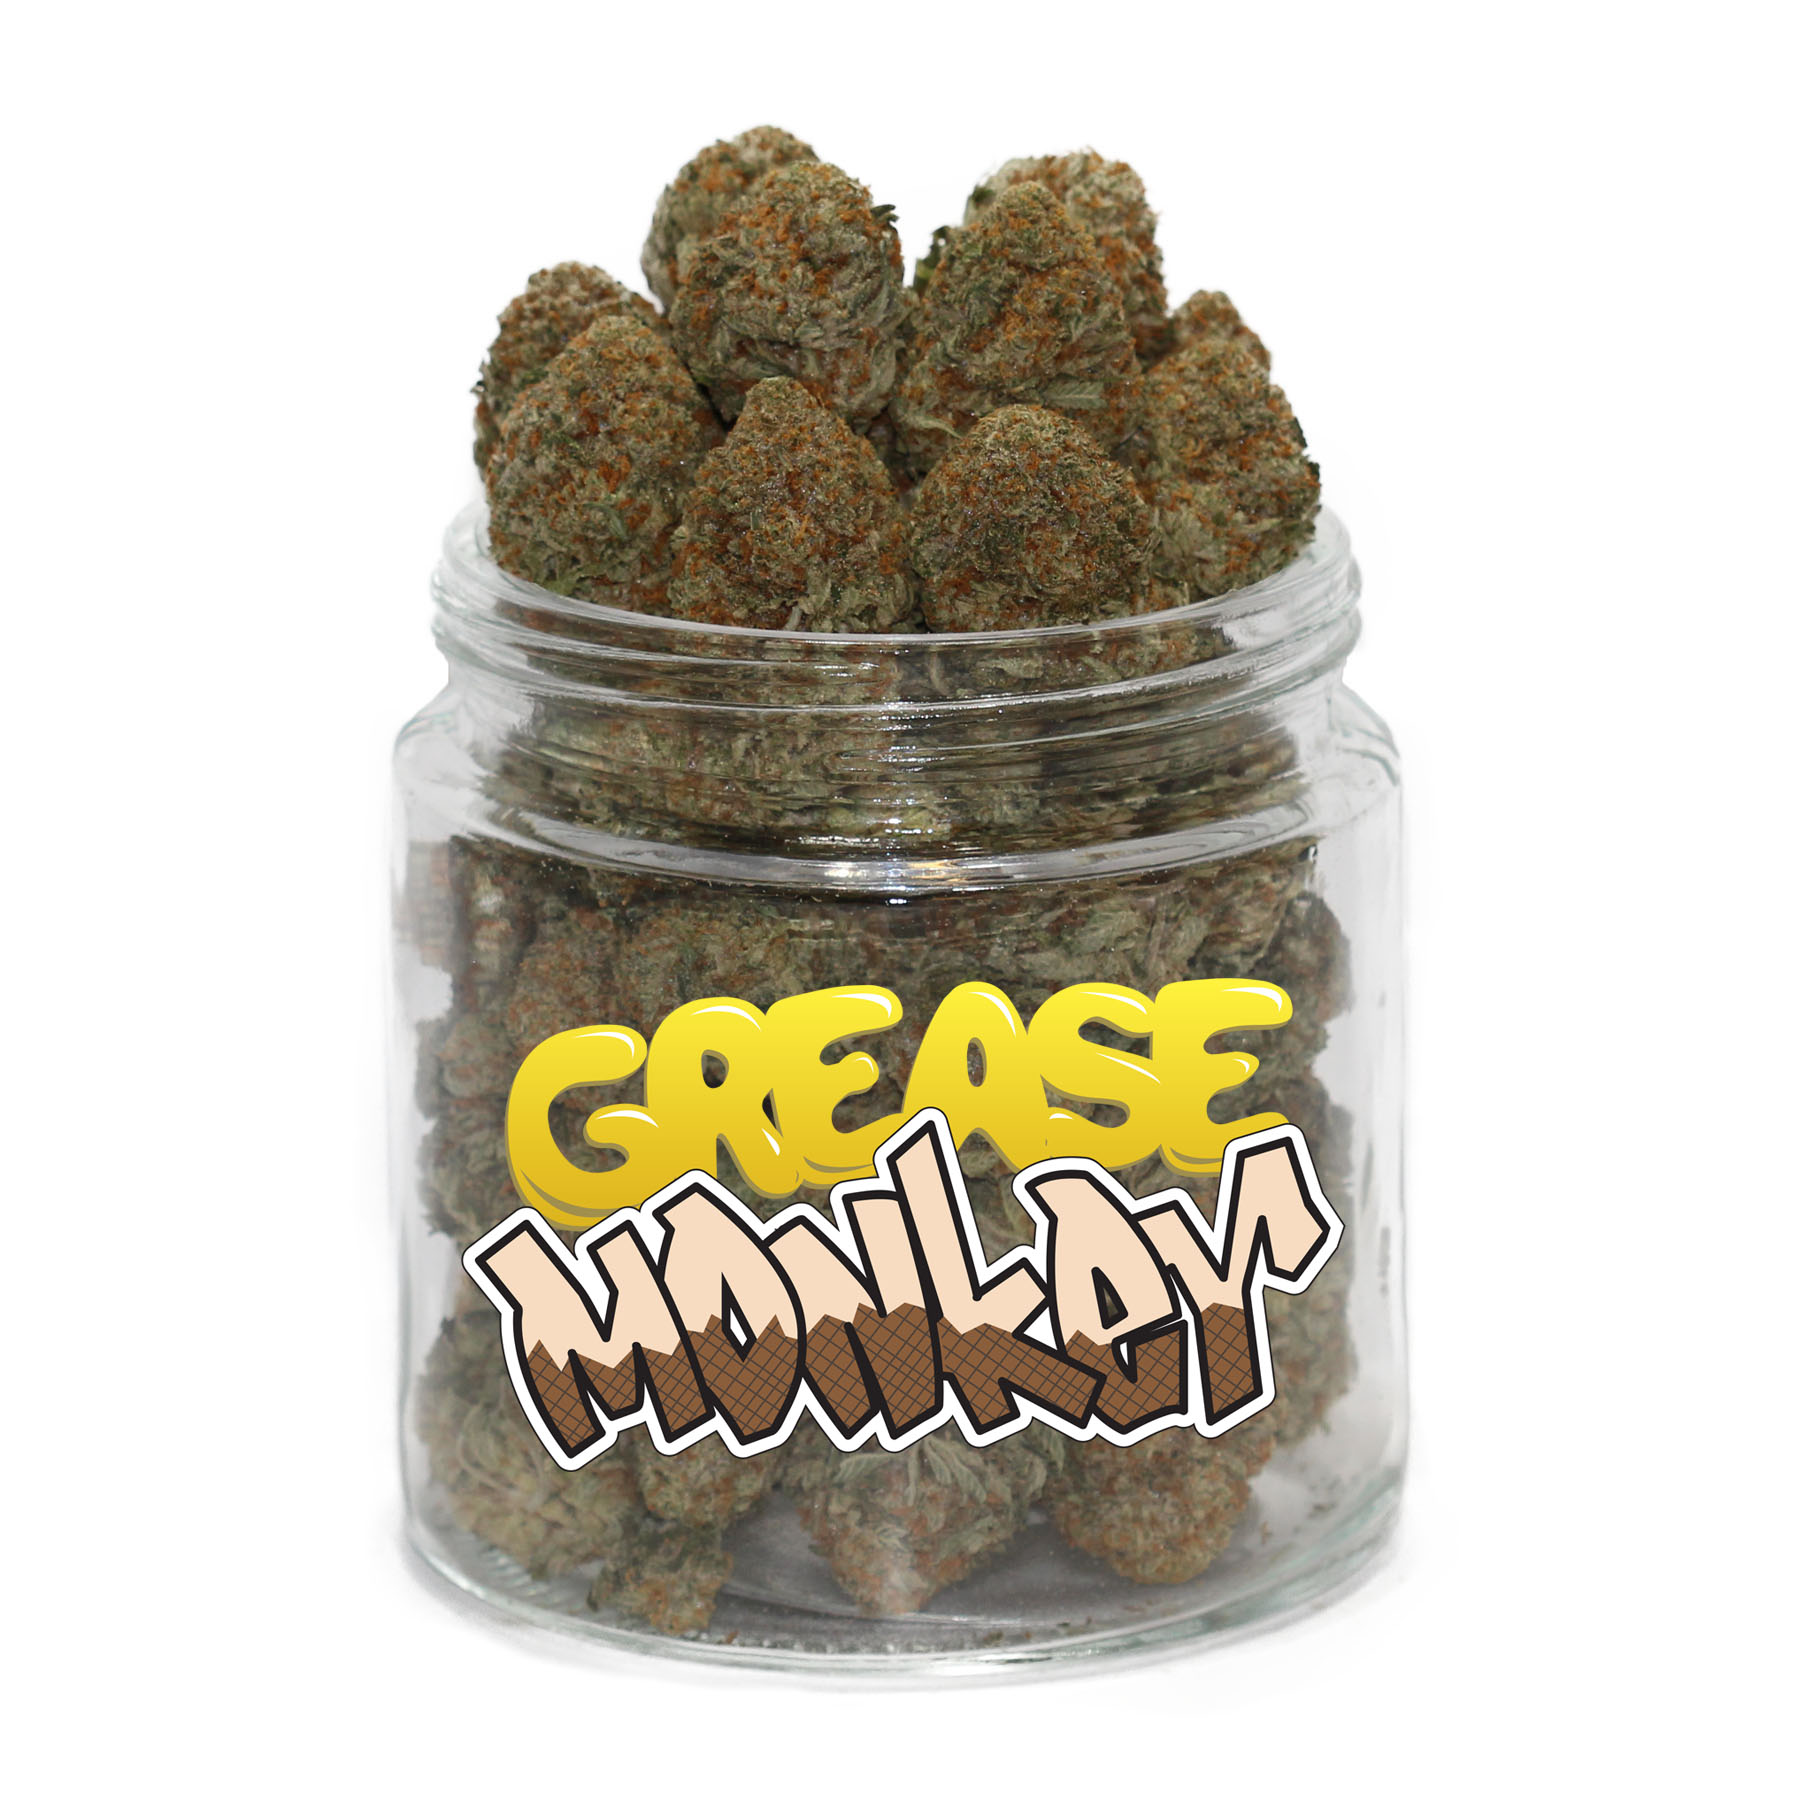 Grease Monkey by Get Kush - Image © 2018 Get Kush. All Rights Reserved.